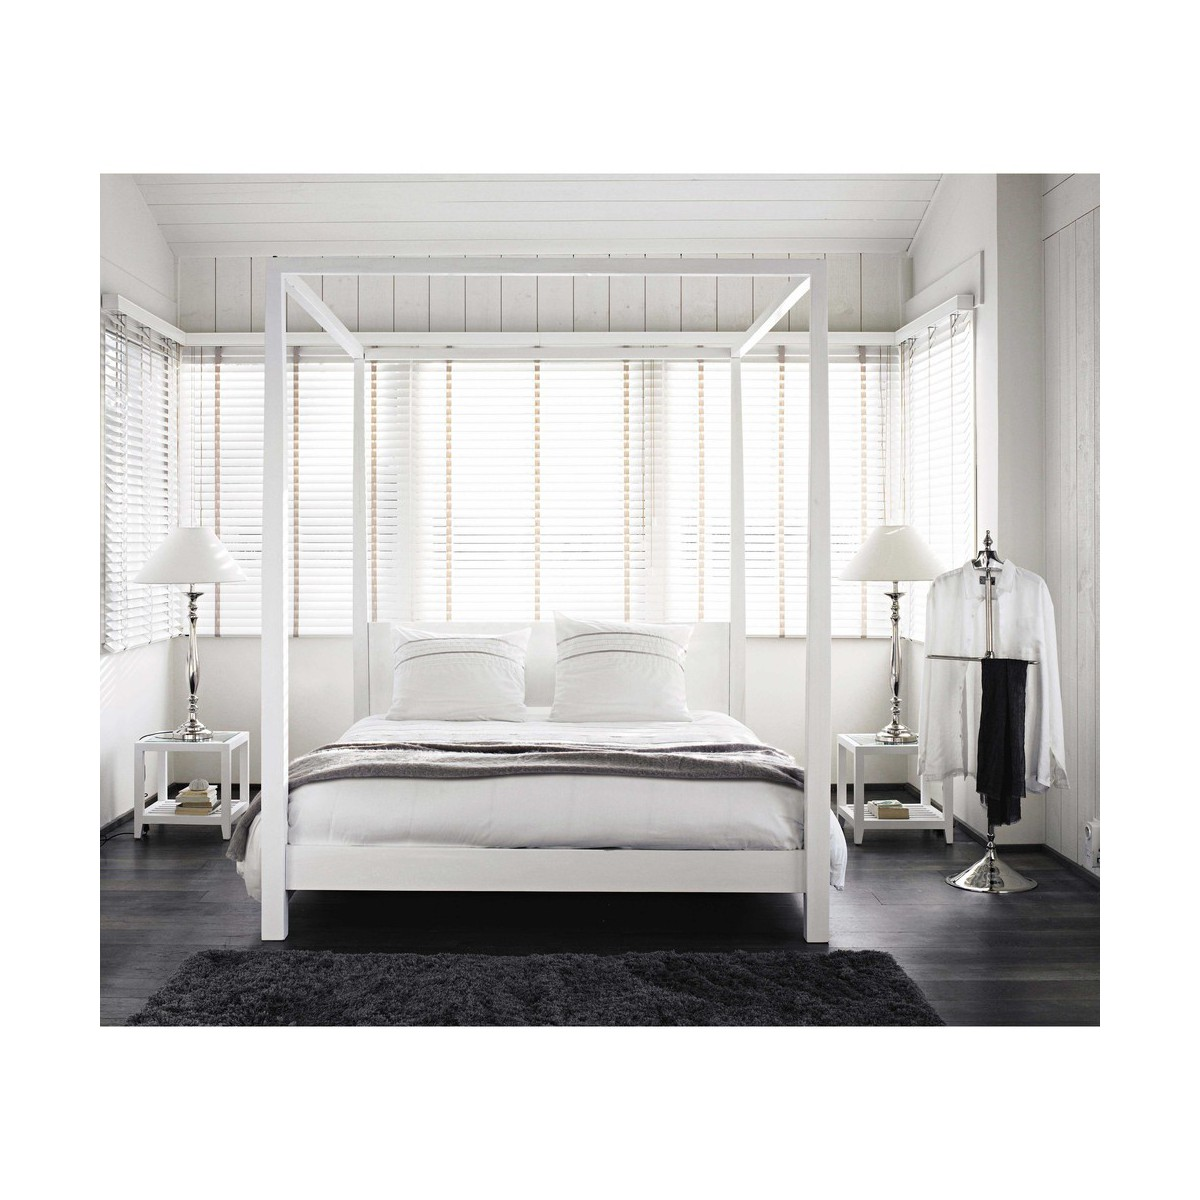 lit a baldaquin maison du monde latest from maisons du monde with lit a baldaquin maison du. Black Bedroom Furniture Sets. Home Design Ideas